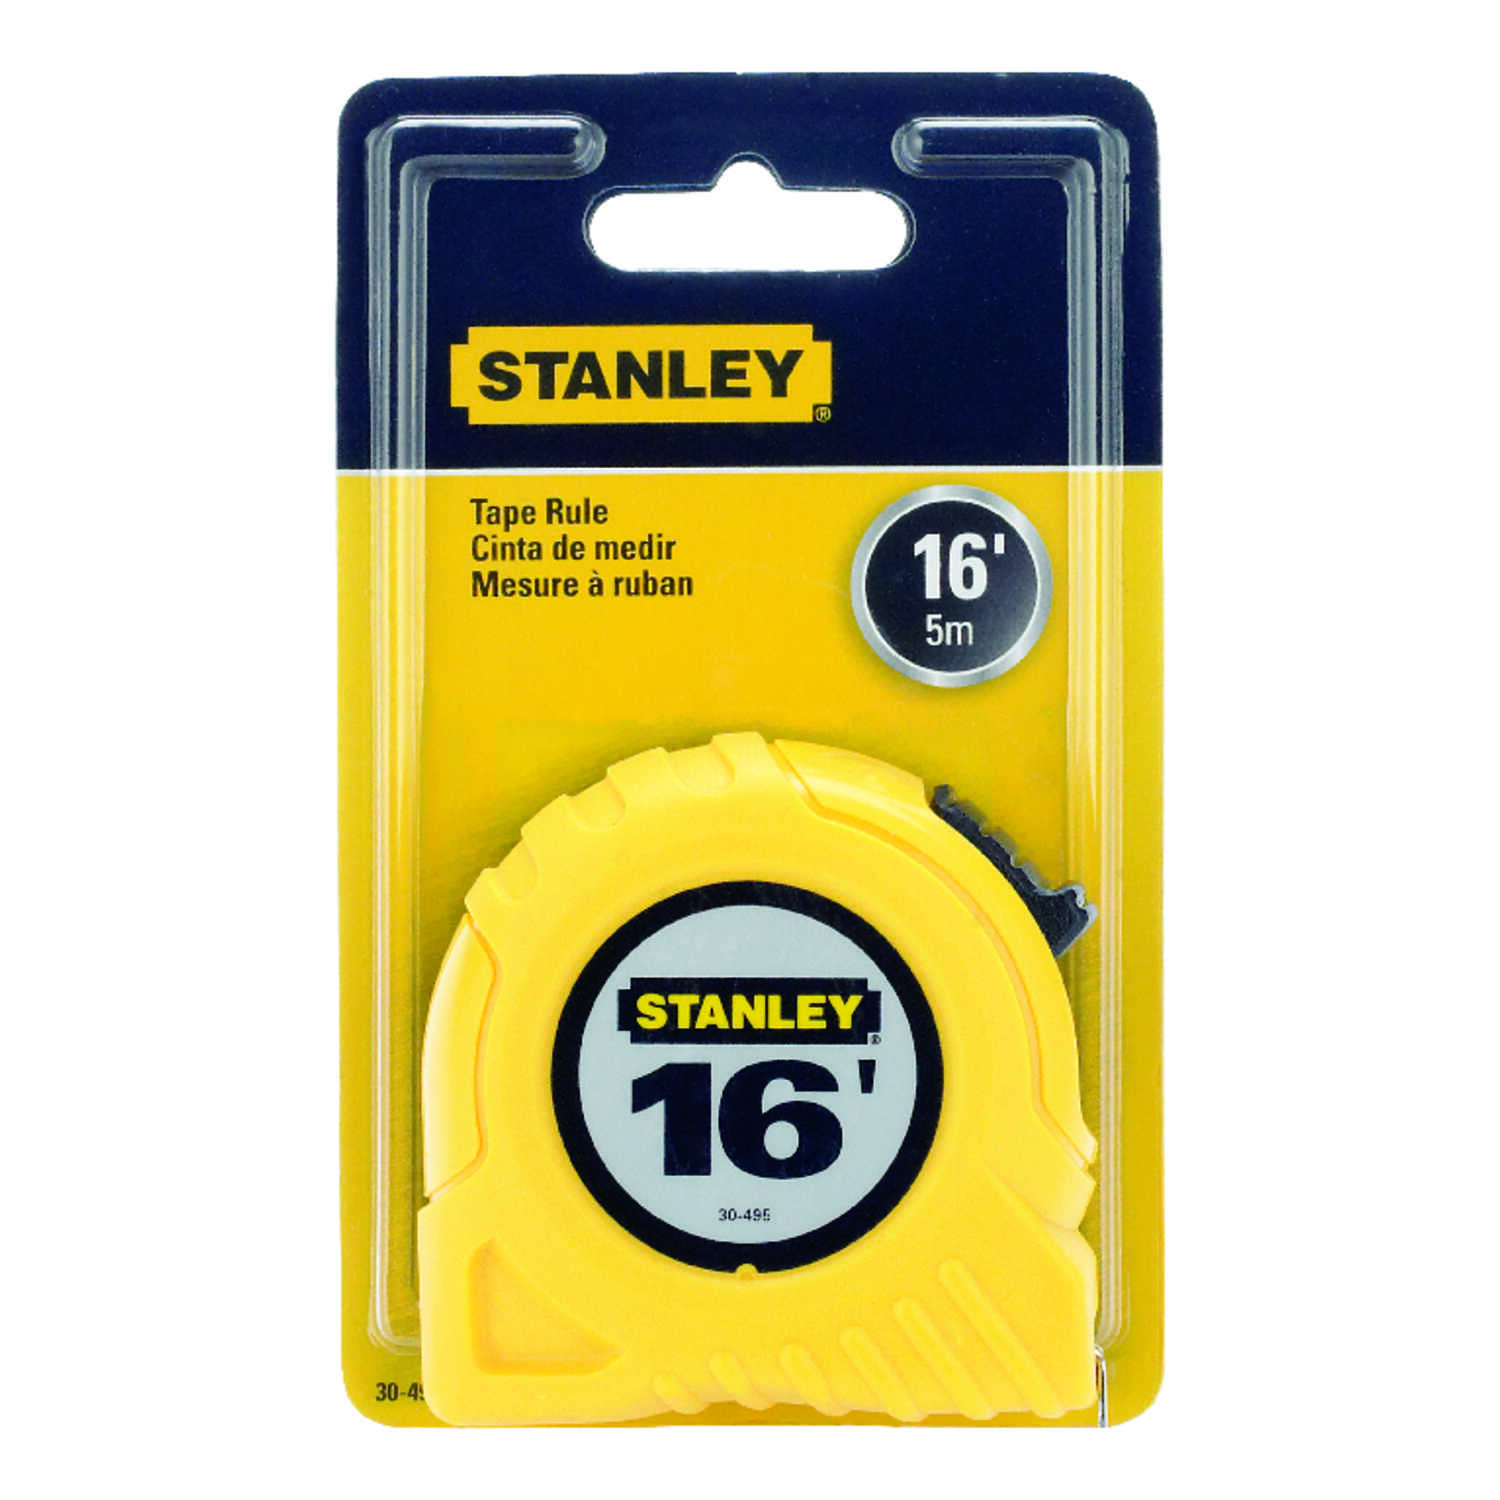 Stanley  0.75 in. W x 16 ft. L Tape Measure  1 pk Yellow